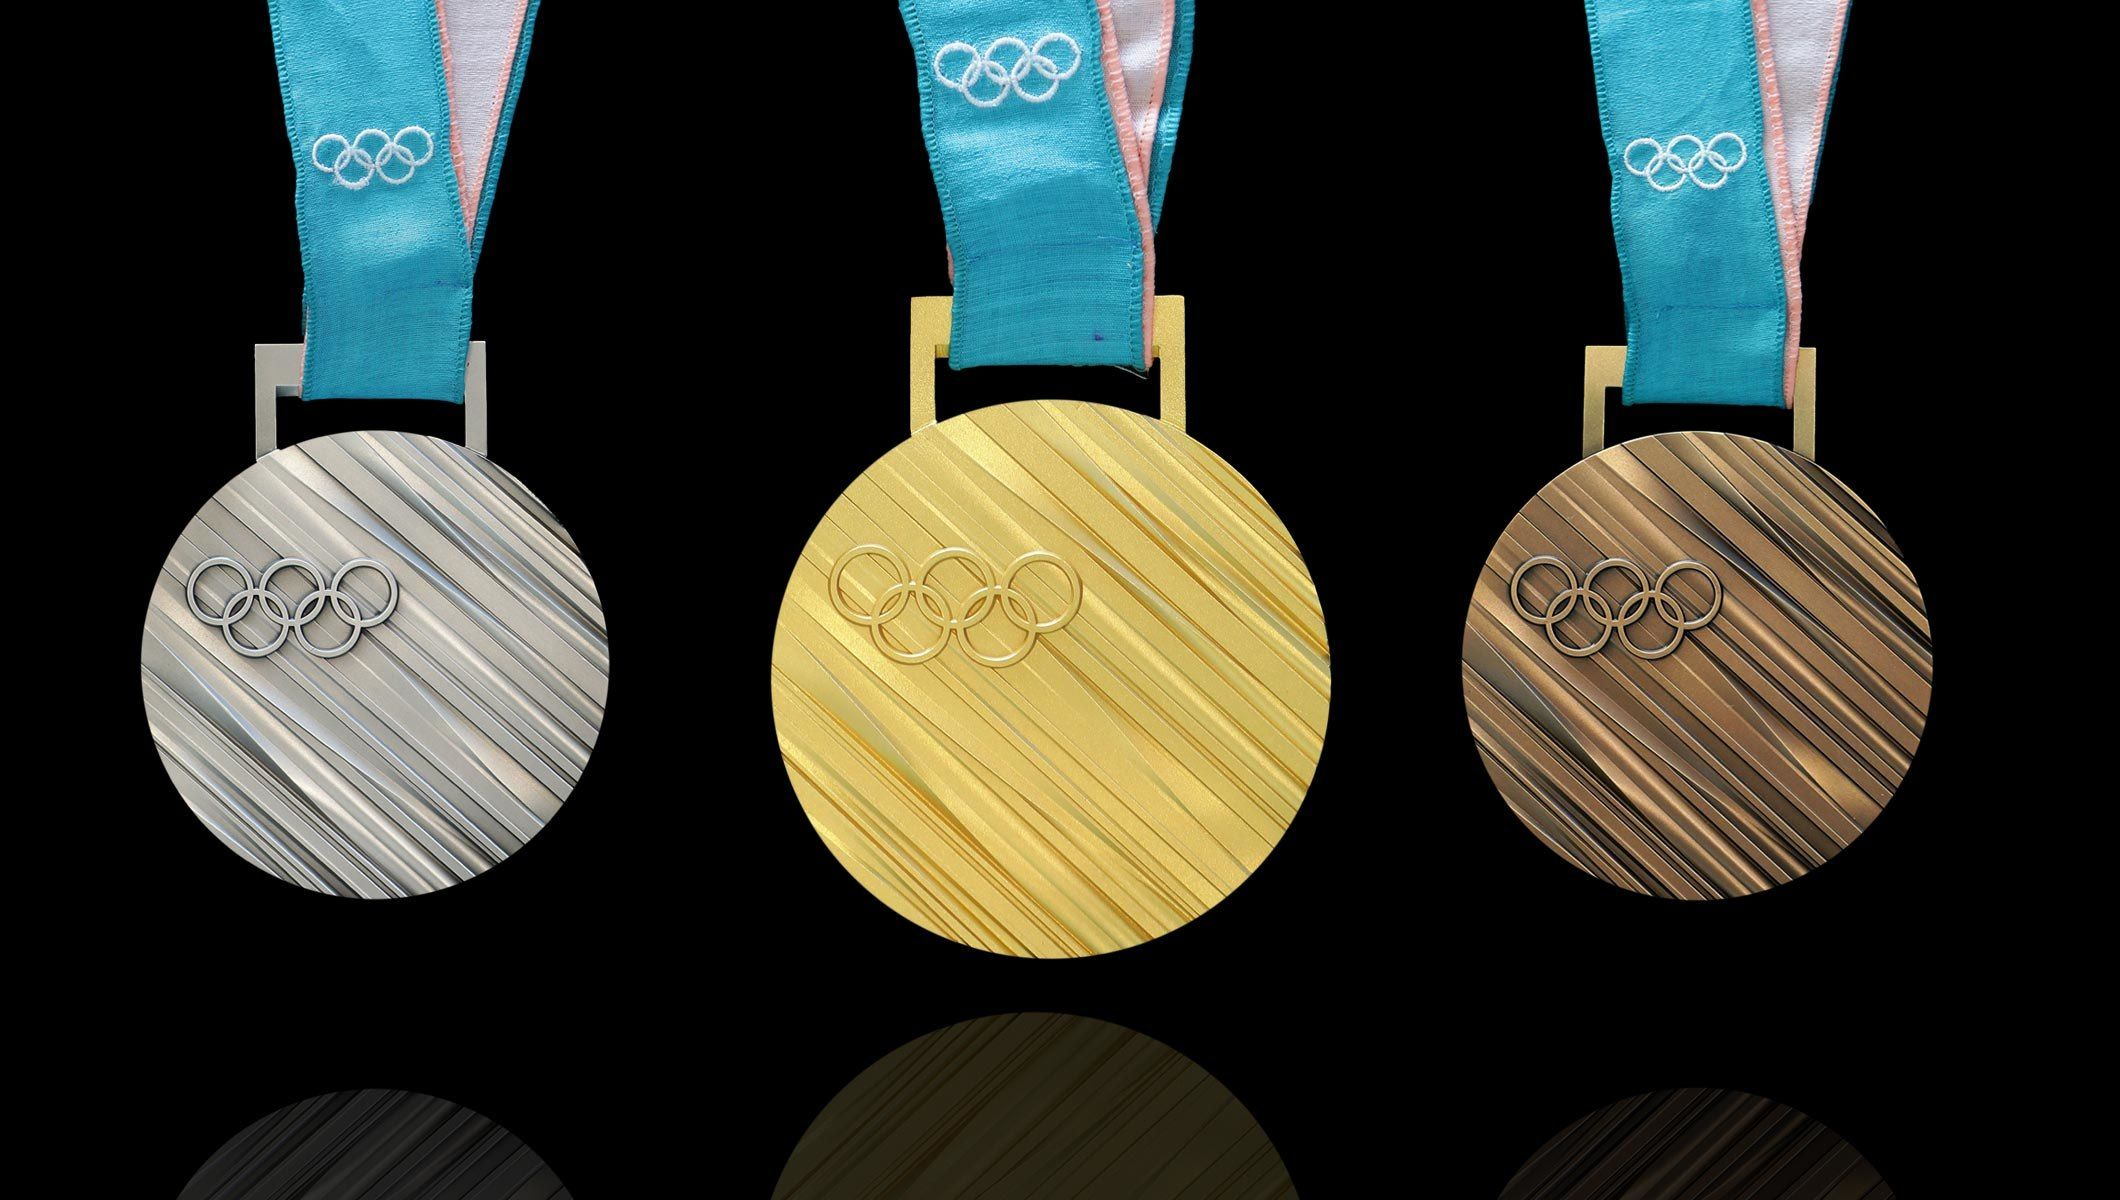 Pyeongchang 2020 Olympic Winter Games Medals By Country.8 Designs And Technologies At Pyeongchang Winter Olympics